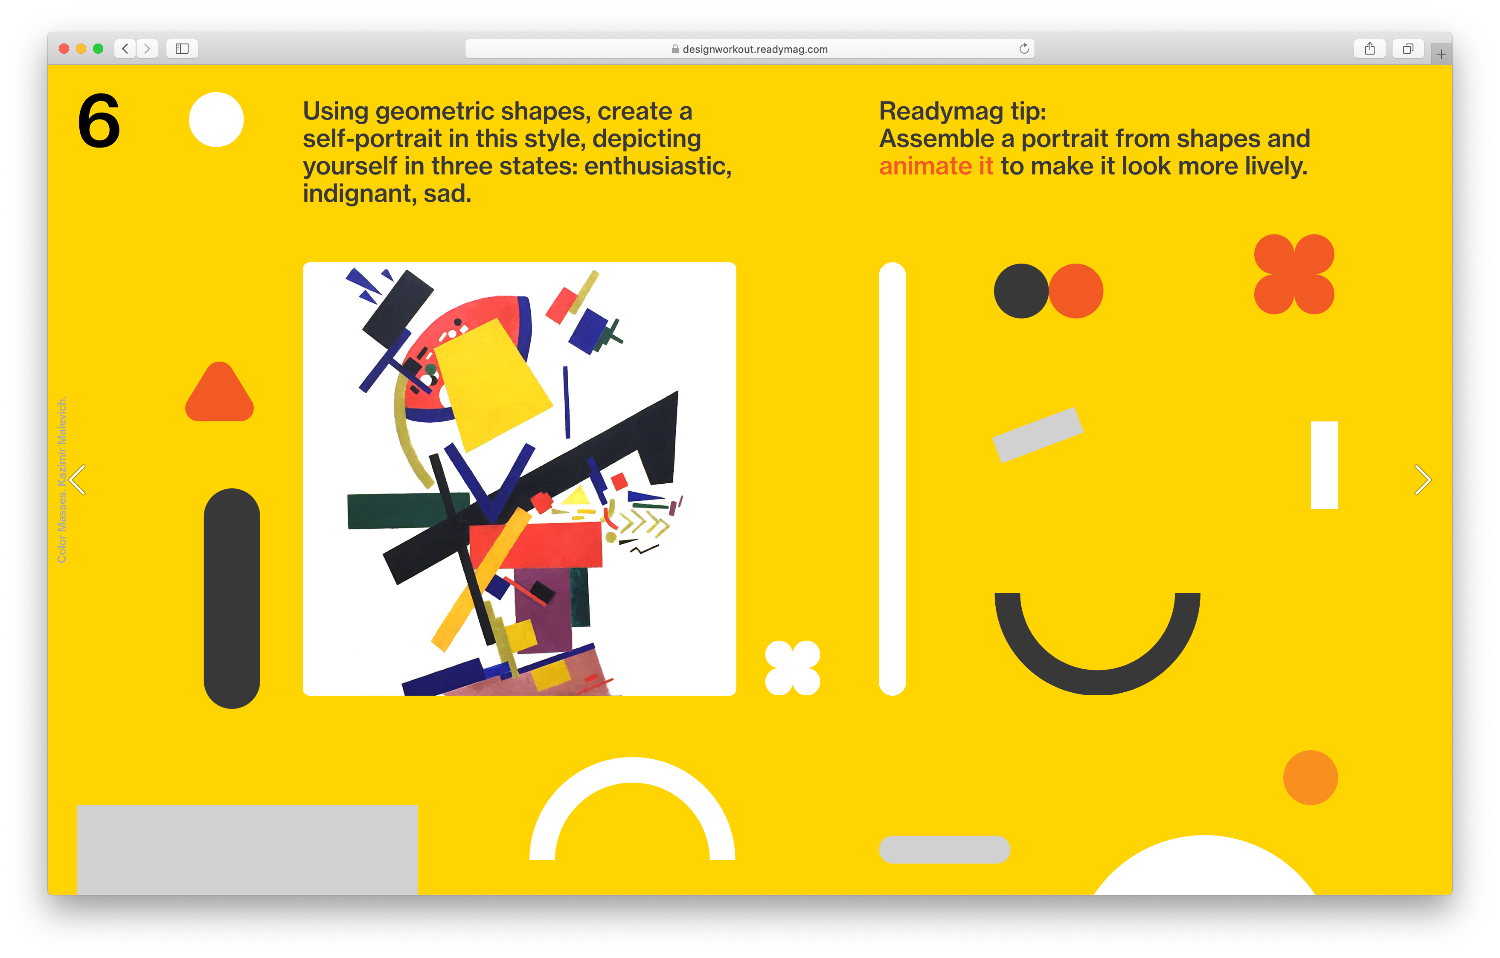 readymag design workout 4